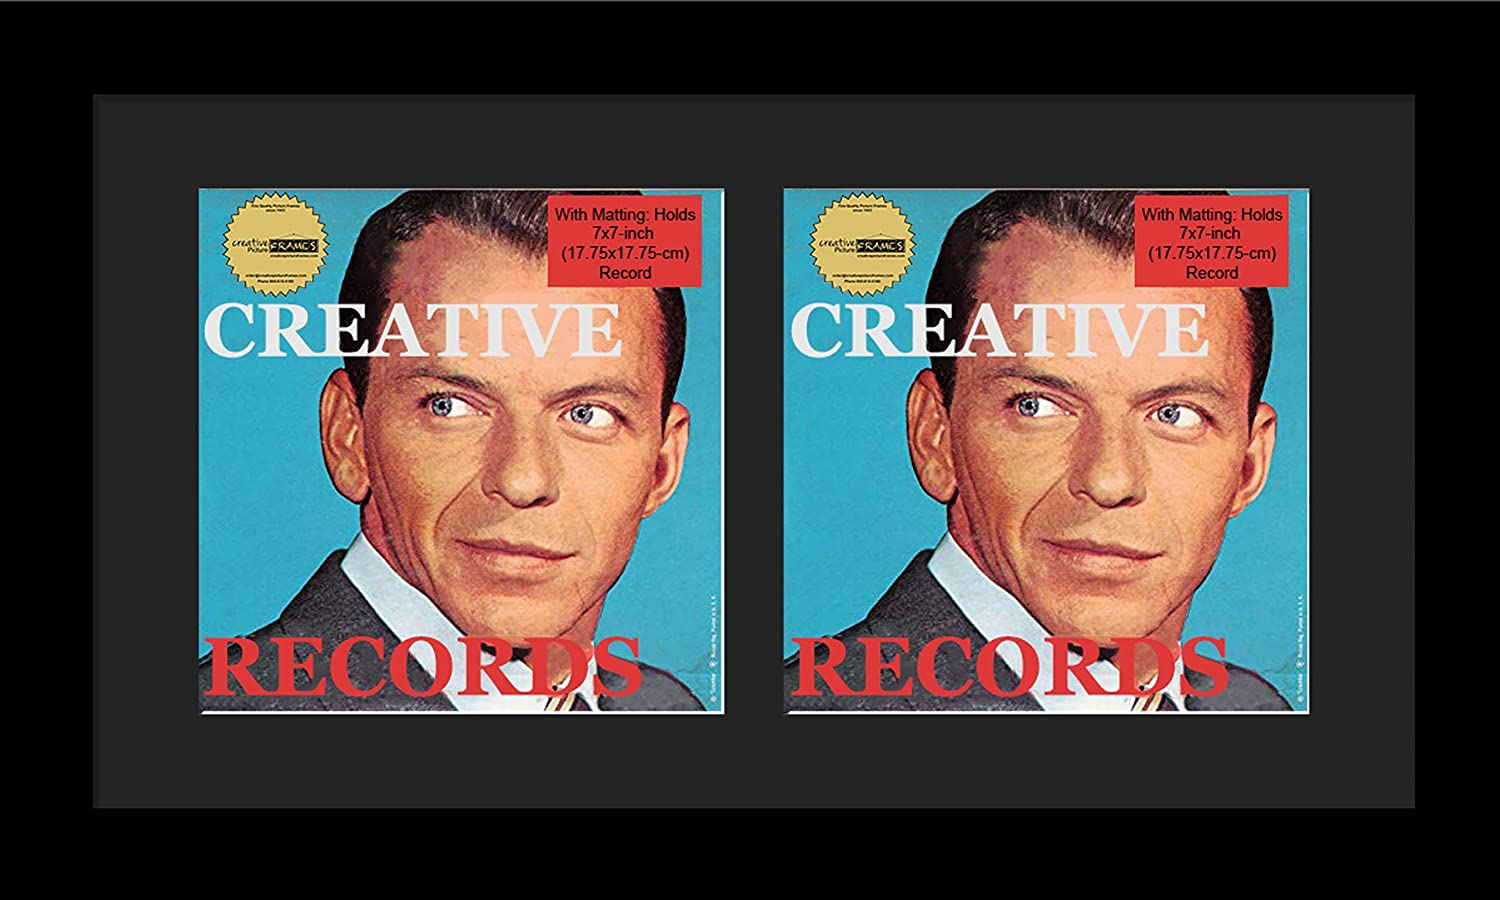 Creative Picture Frames 45 Rapid rise Double Cover Frame Record Tw Displays famous